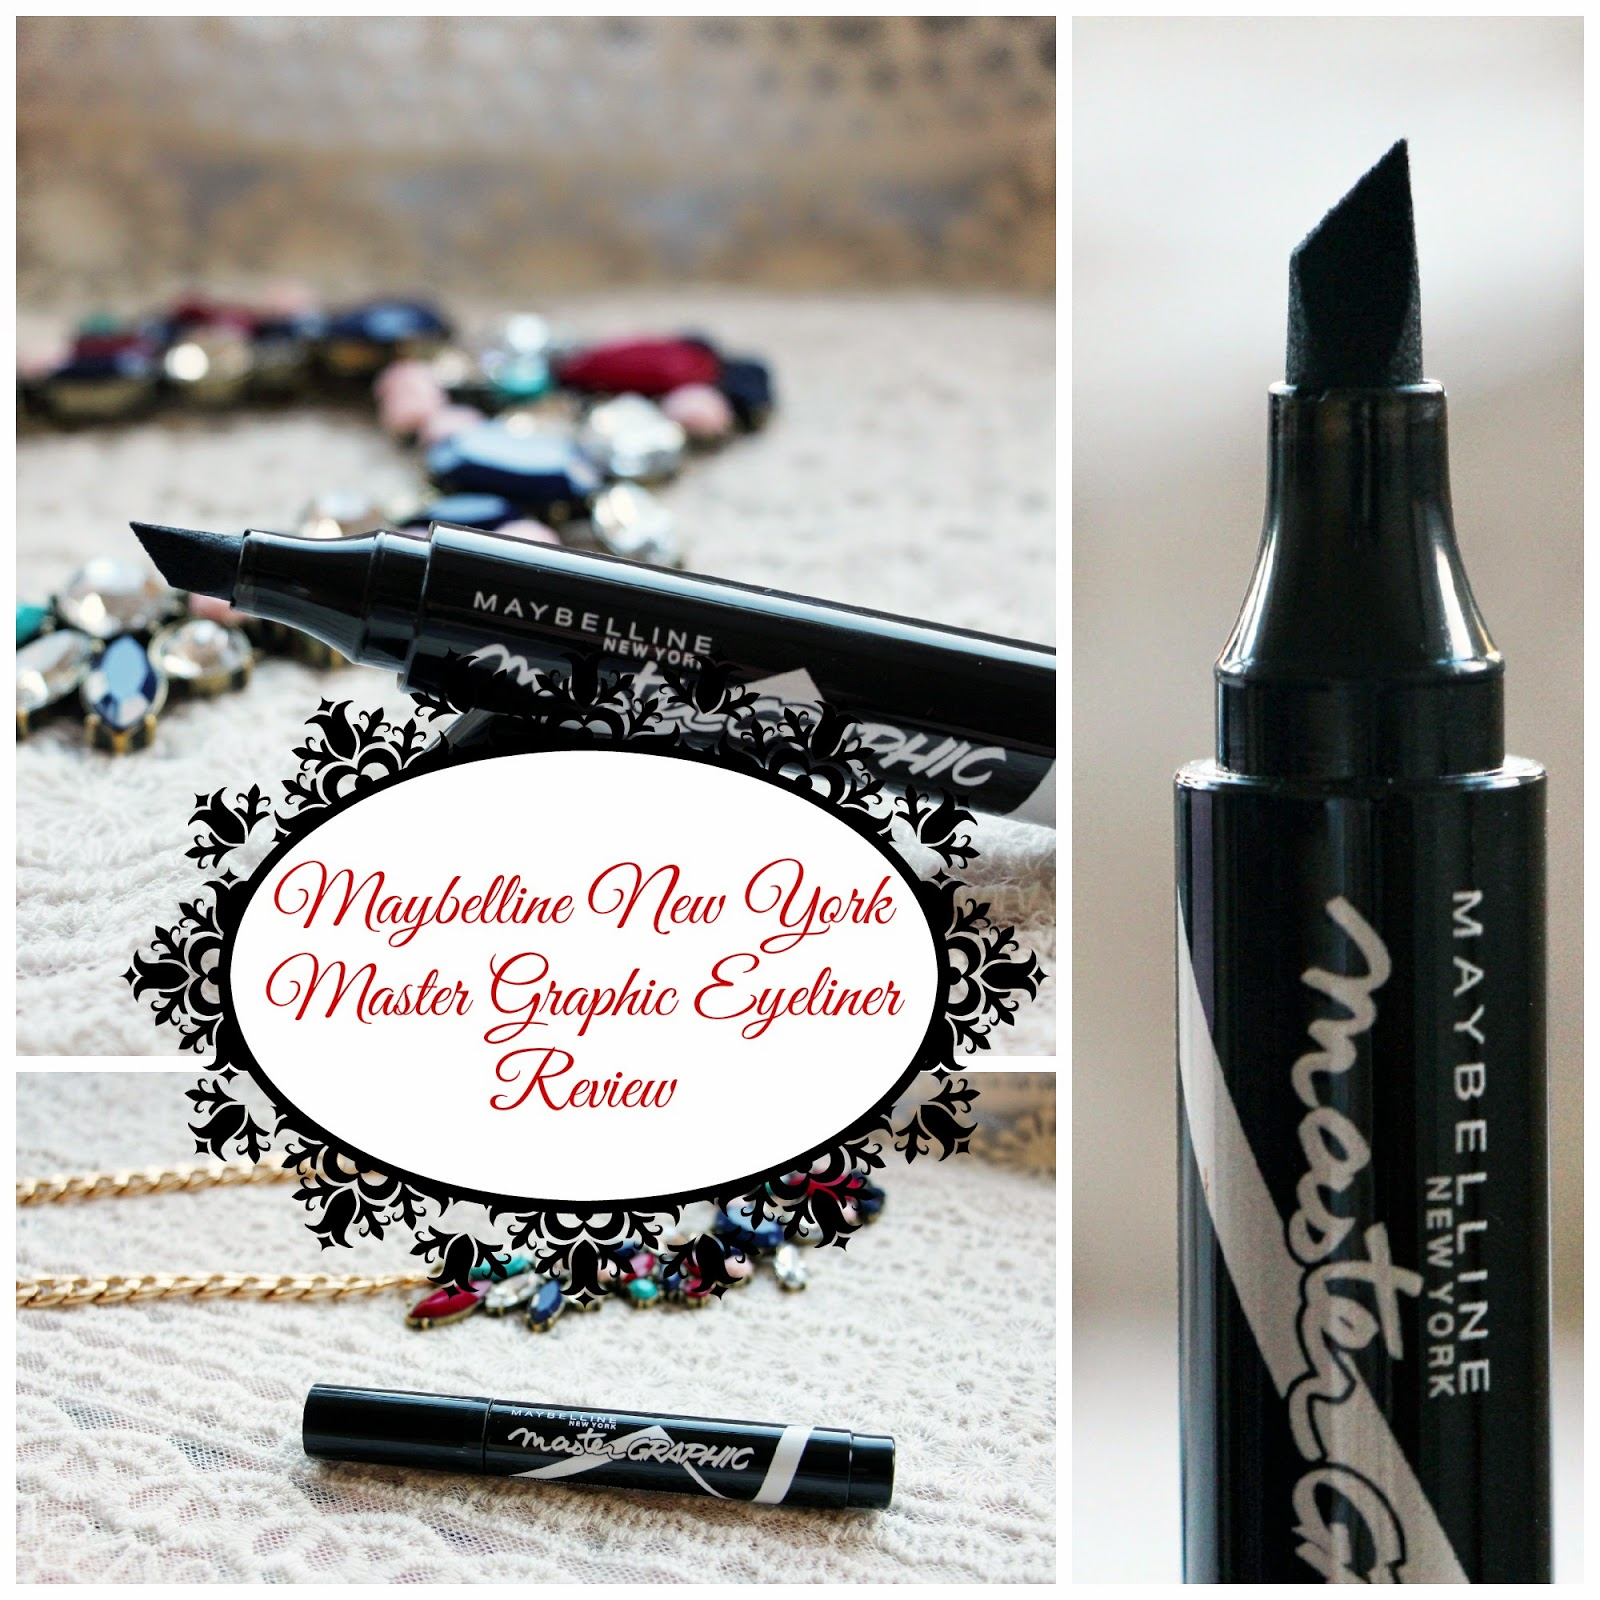 Maybelline New York Master Graphic Eyeliner